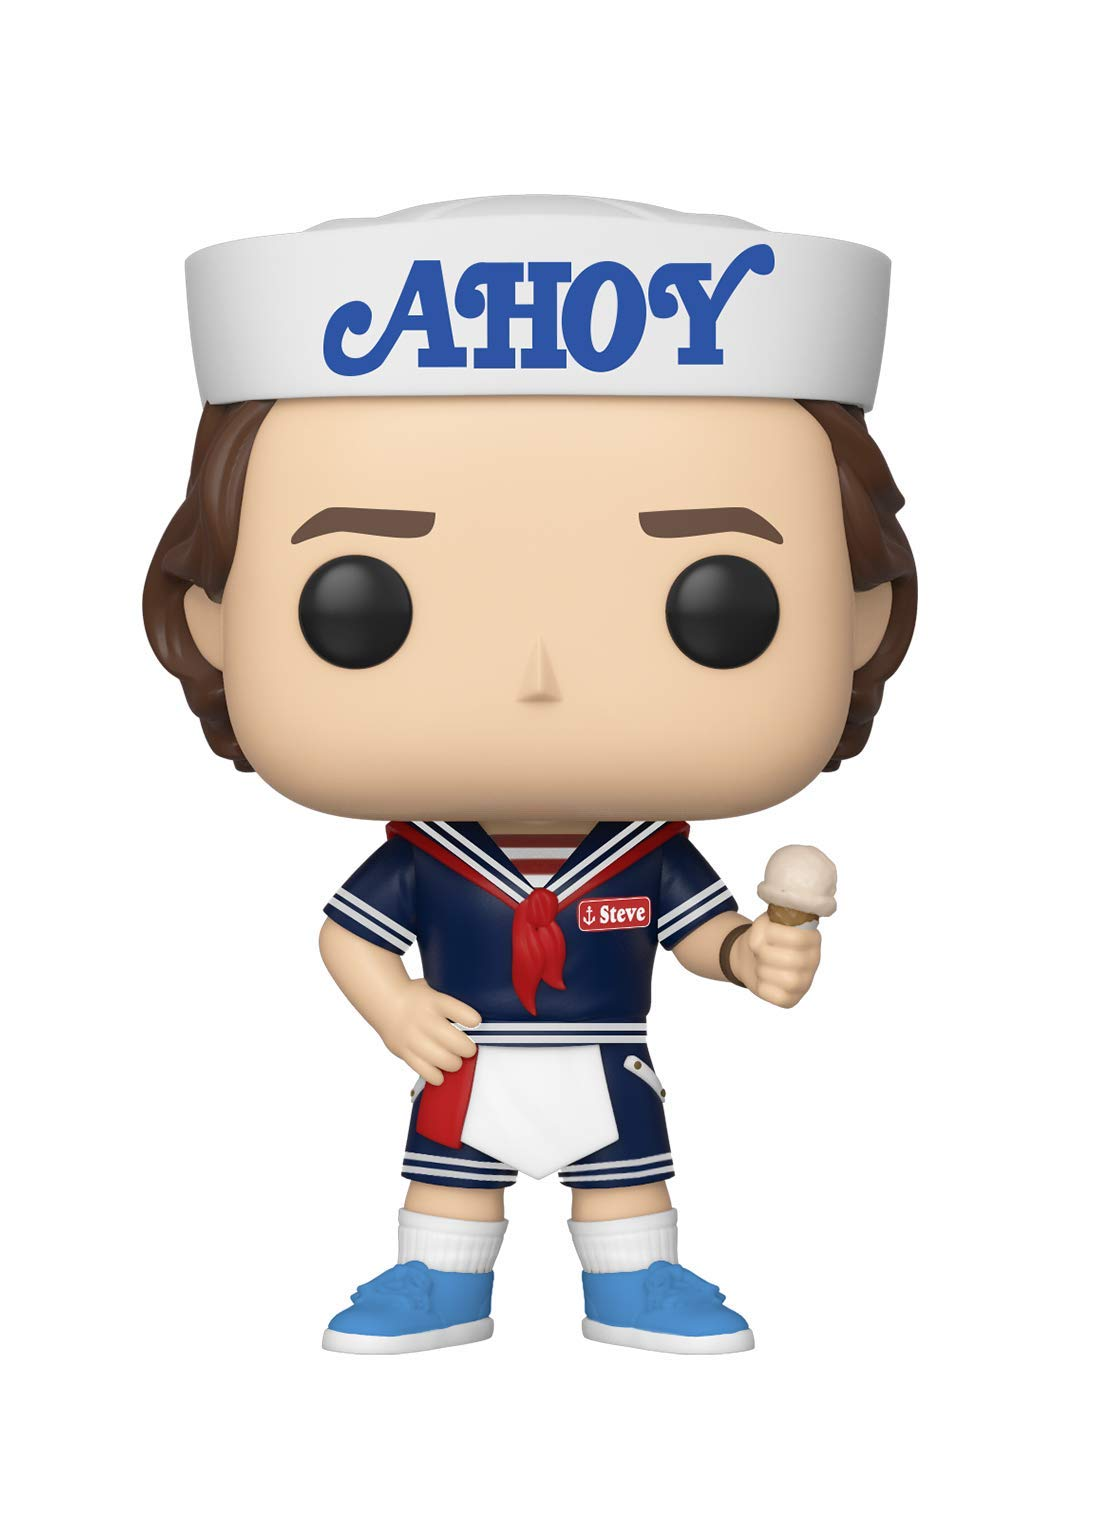 Funko Pop! Television: Stranger Things - Steve with Hat & Ice Cream by Funko